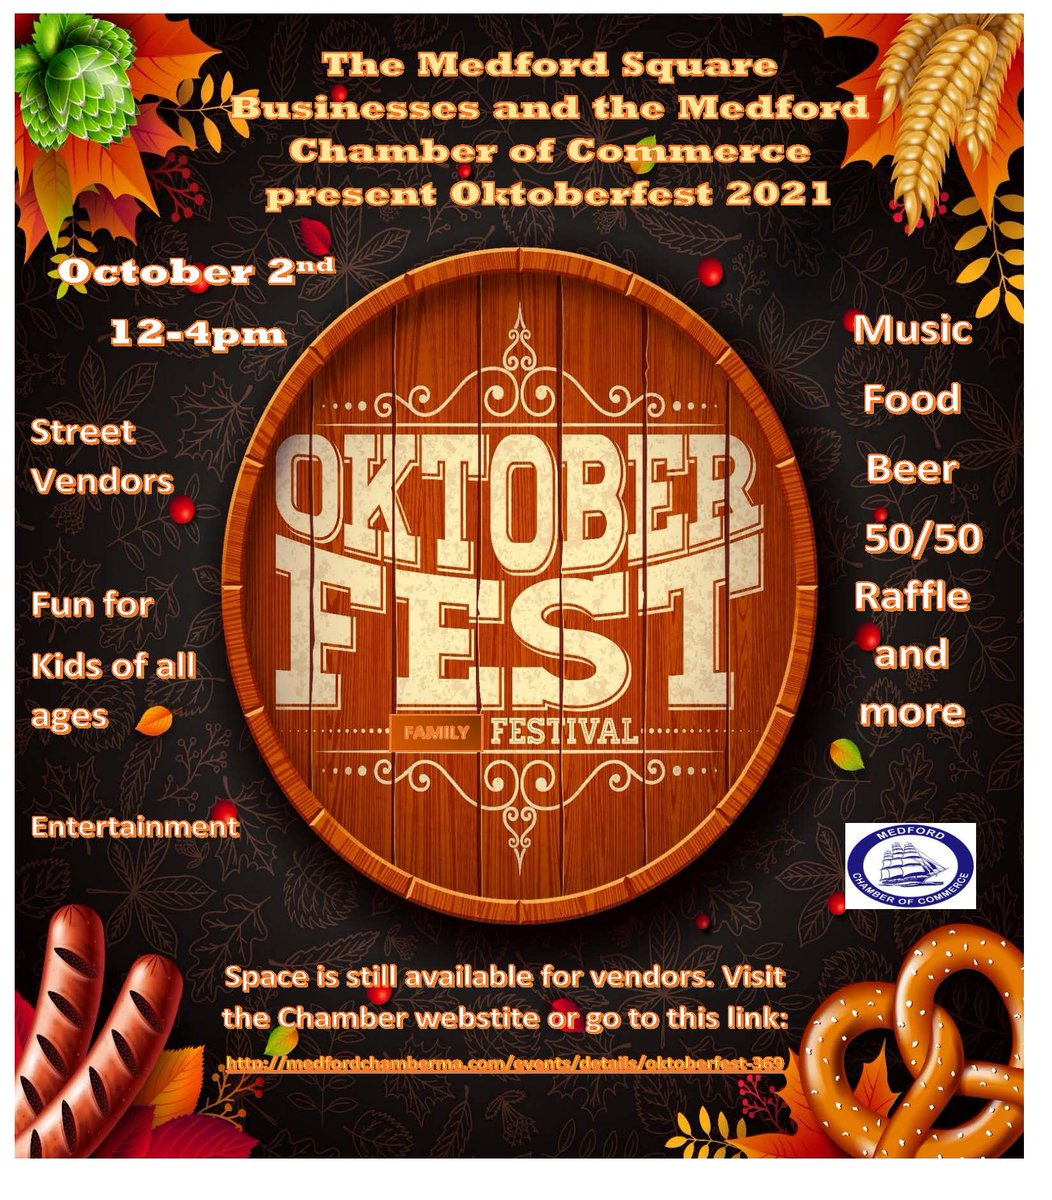 Friends in Medford - Housing Families will have a table at the Medford Oktoberfest tomorrow! Be sure to stop by and say hi!